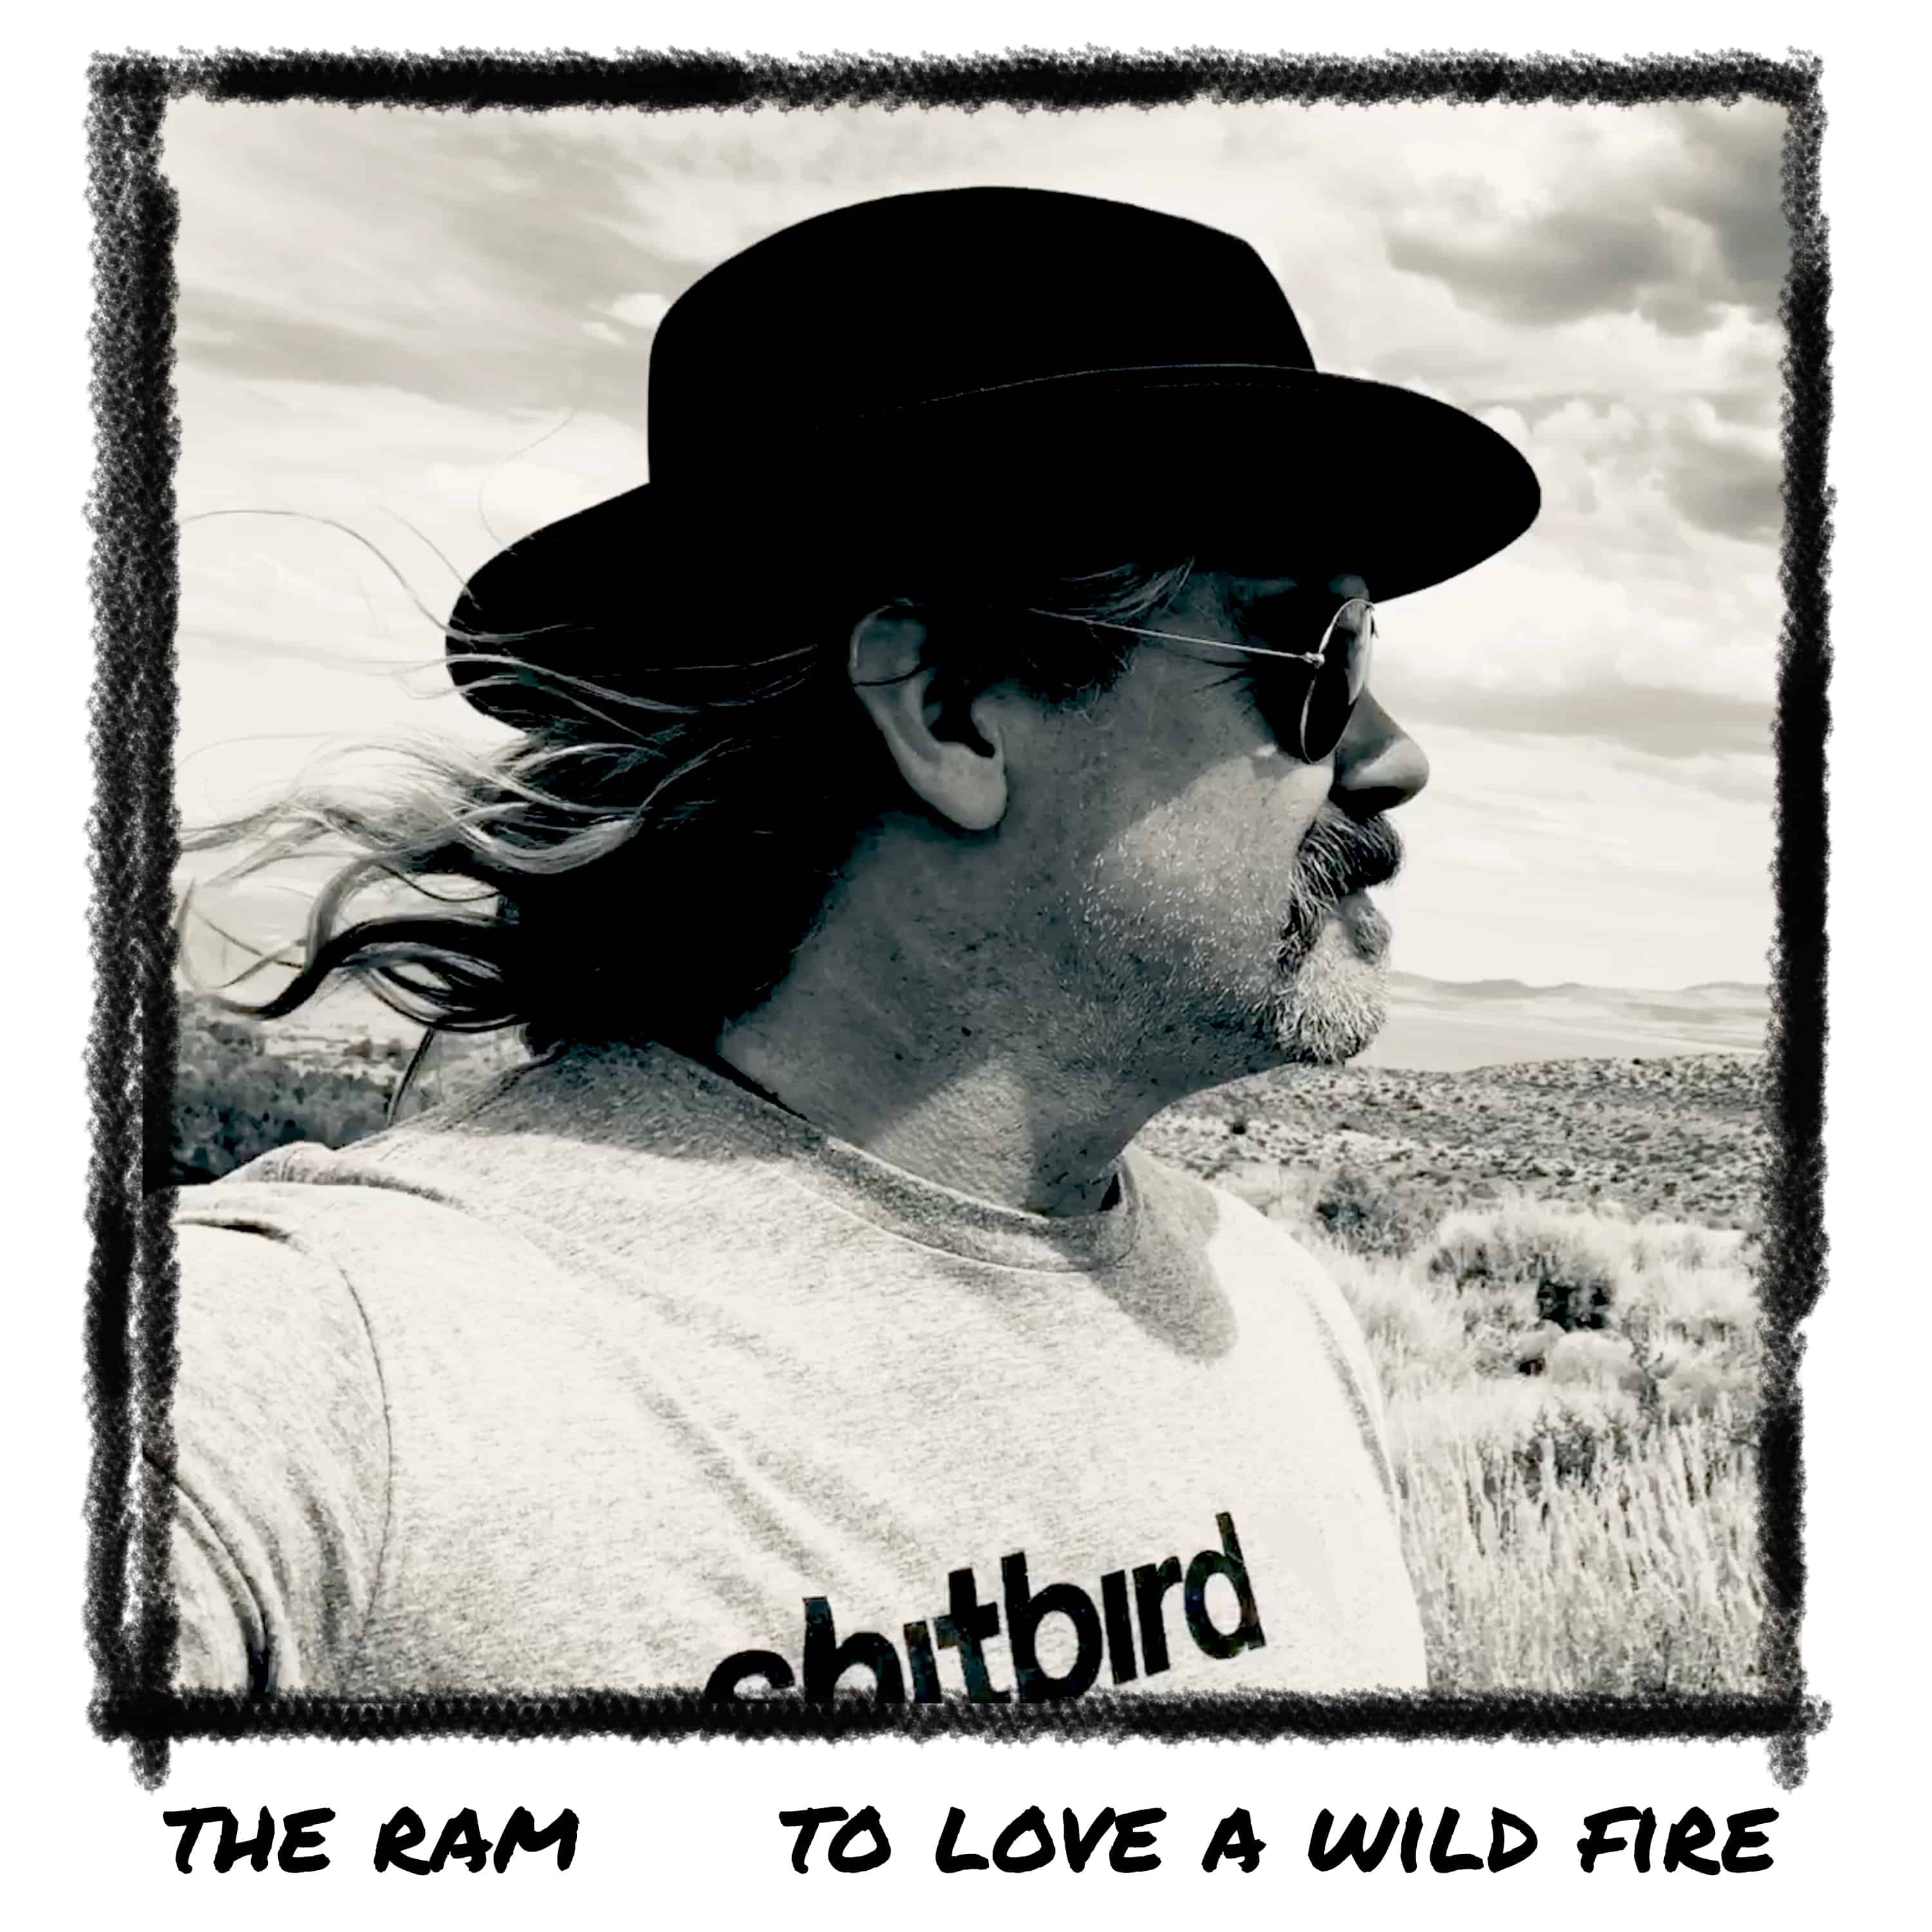 To Love a Wild Fire